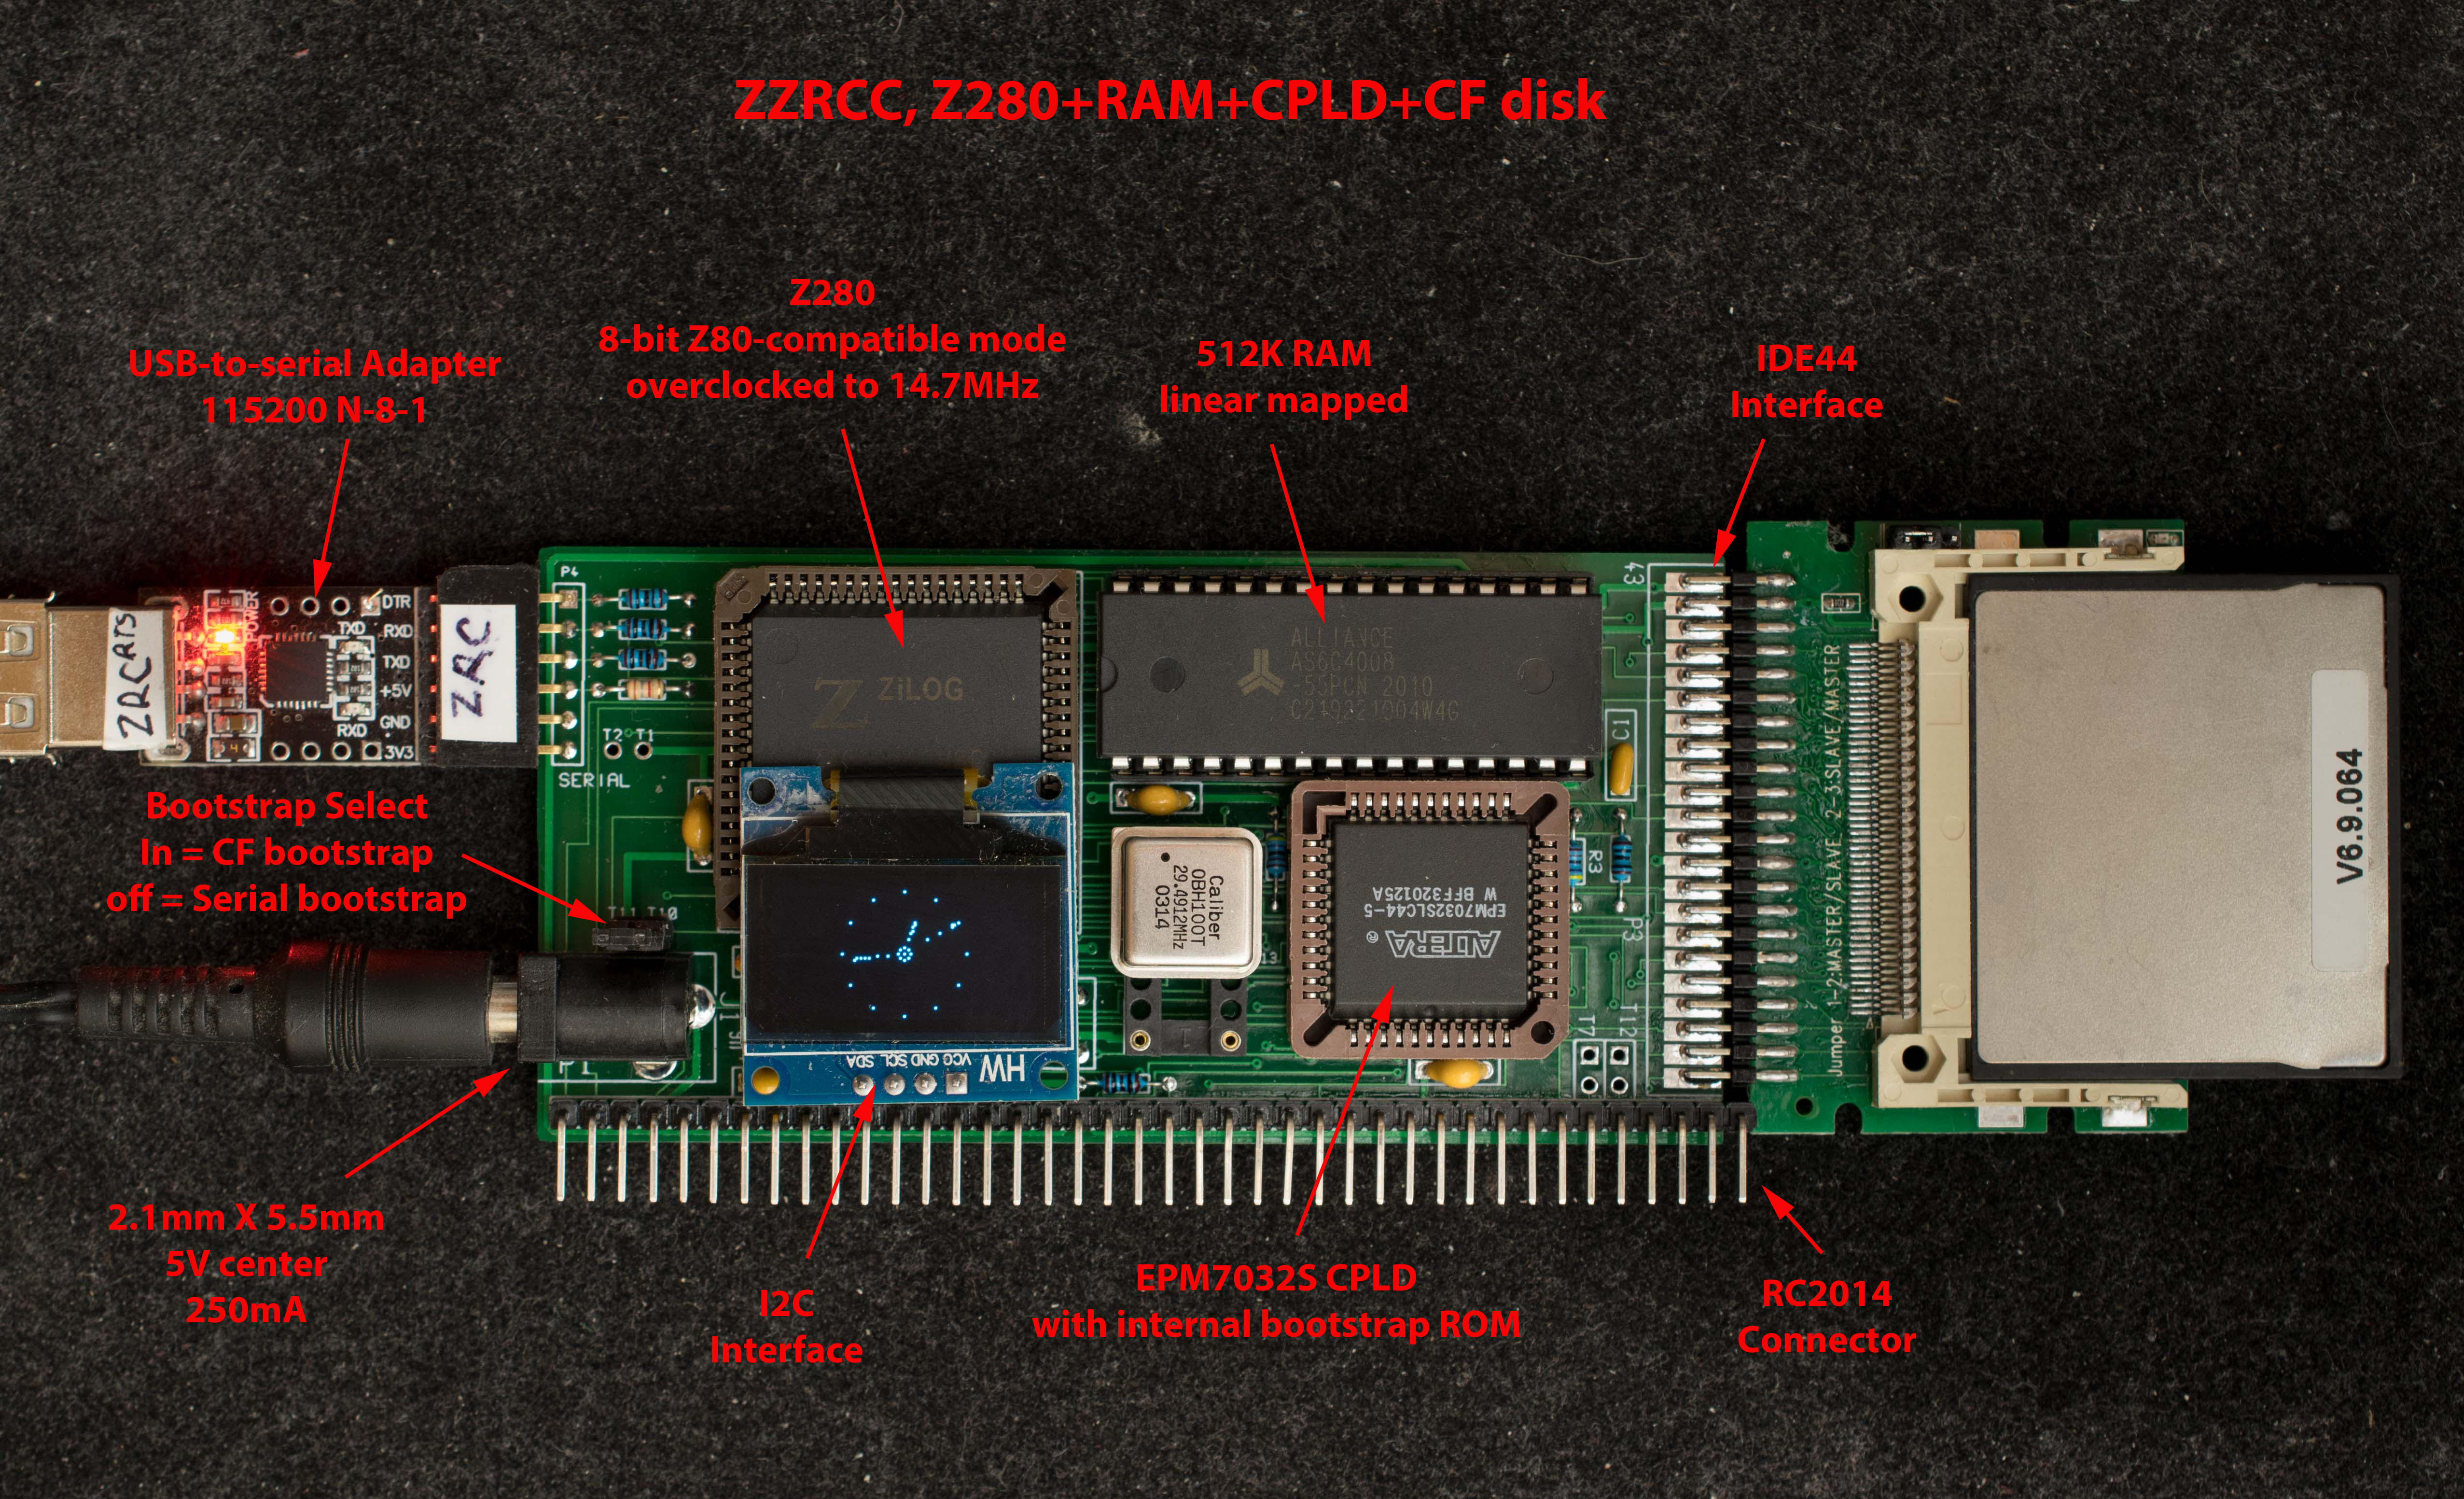 www.retrobrewcomputers.org_lib_plugins_ckgedit_fckeditor_userfiles_image_builderpages_plasmo_zzrcc_zzrcc_i2c_annotatated.jpg